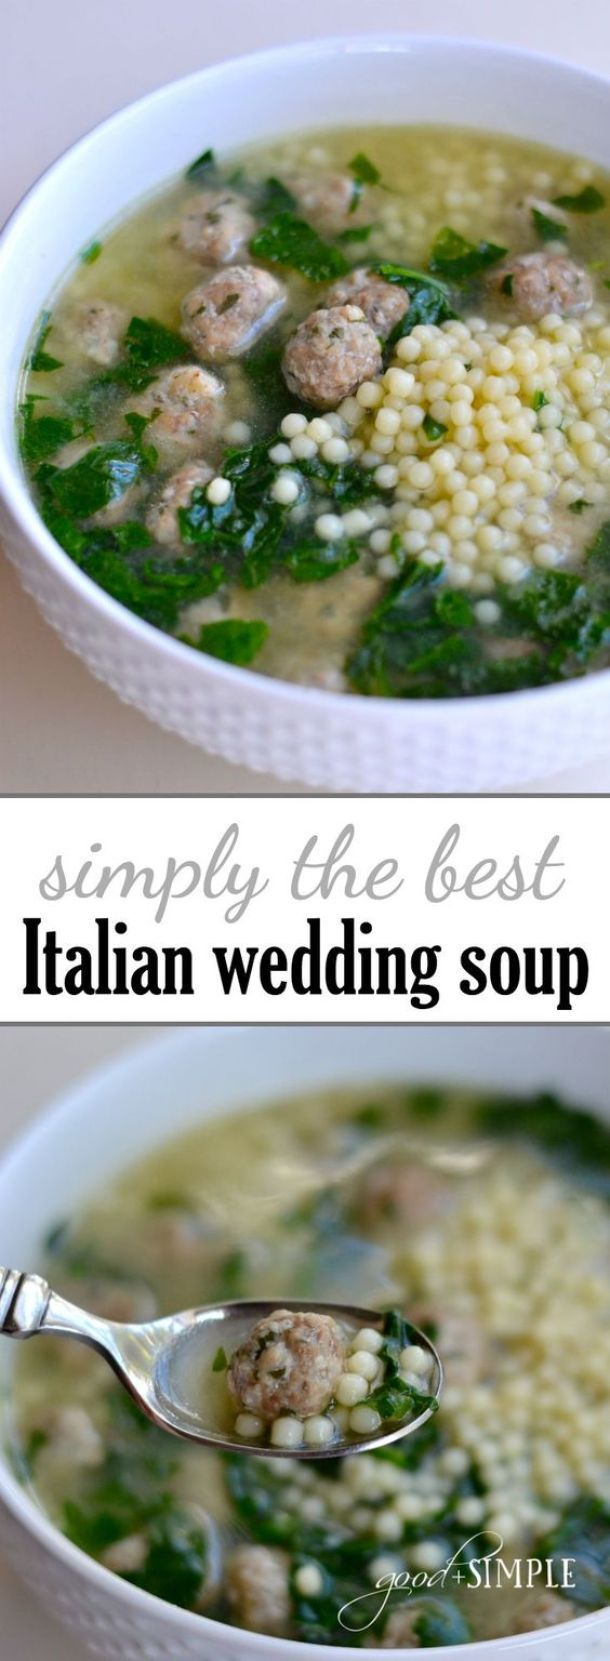 Simply the Best Italian Wedding Soup Recipe | Good + Simple - The BEST Homemade Soups Recipes - Easy, Quick and Yummy Lunch and Dinner Family Favorites Meals Ideas